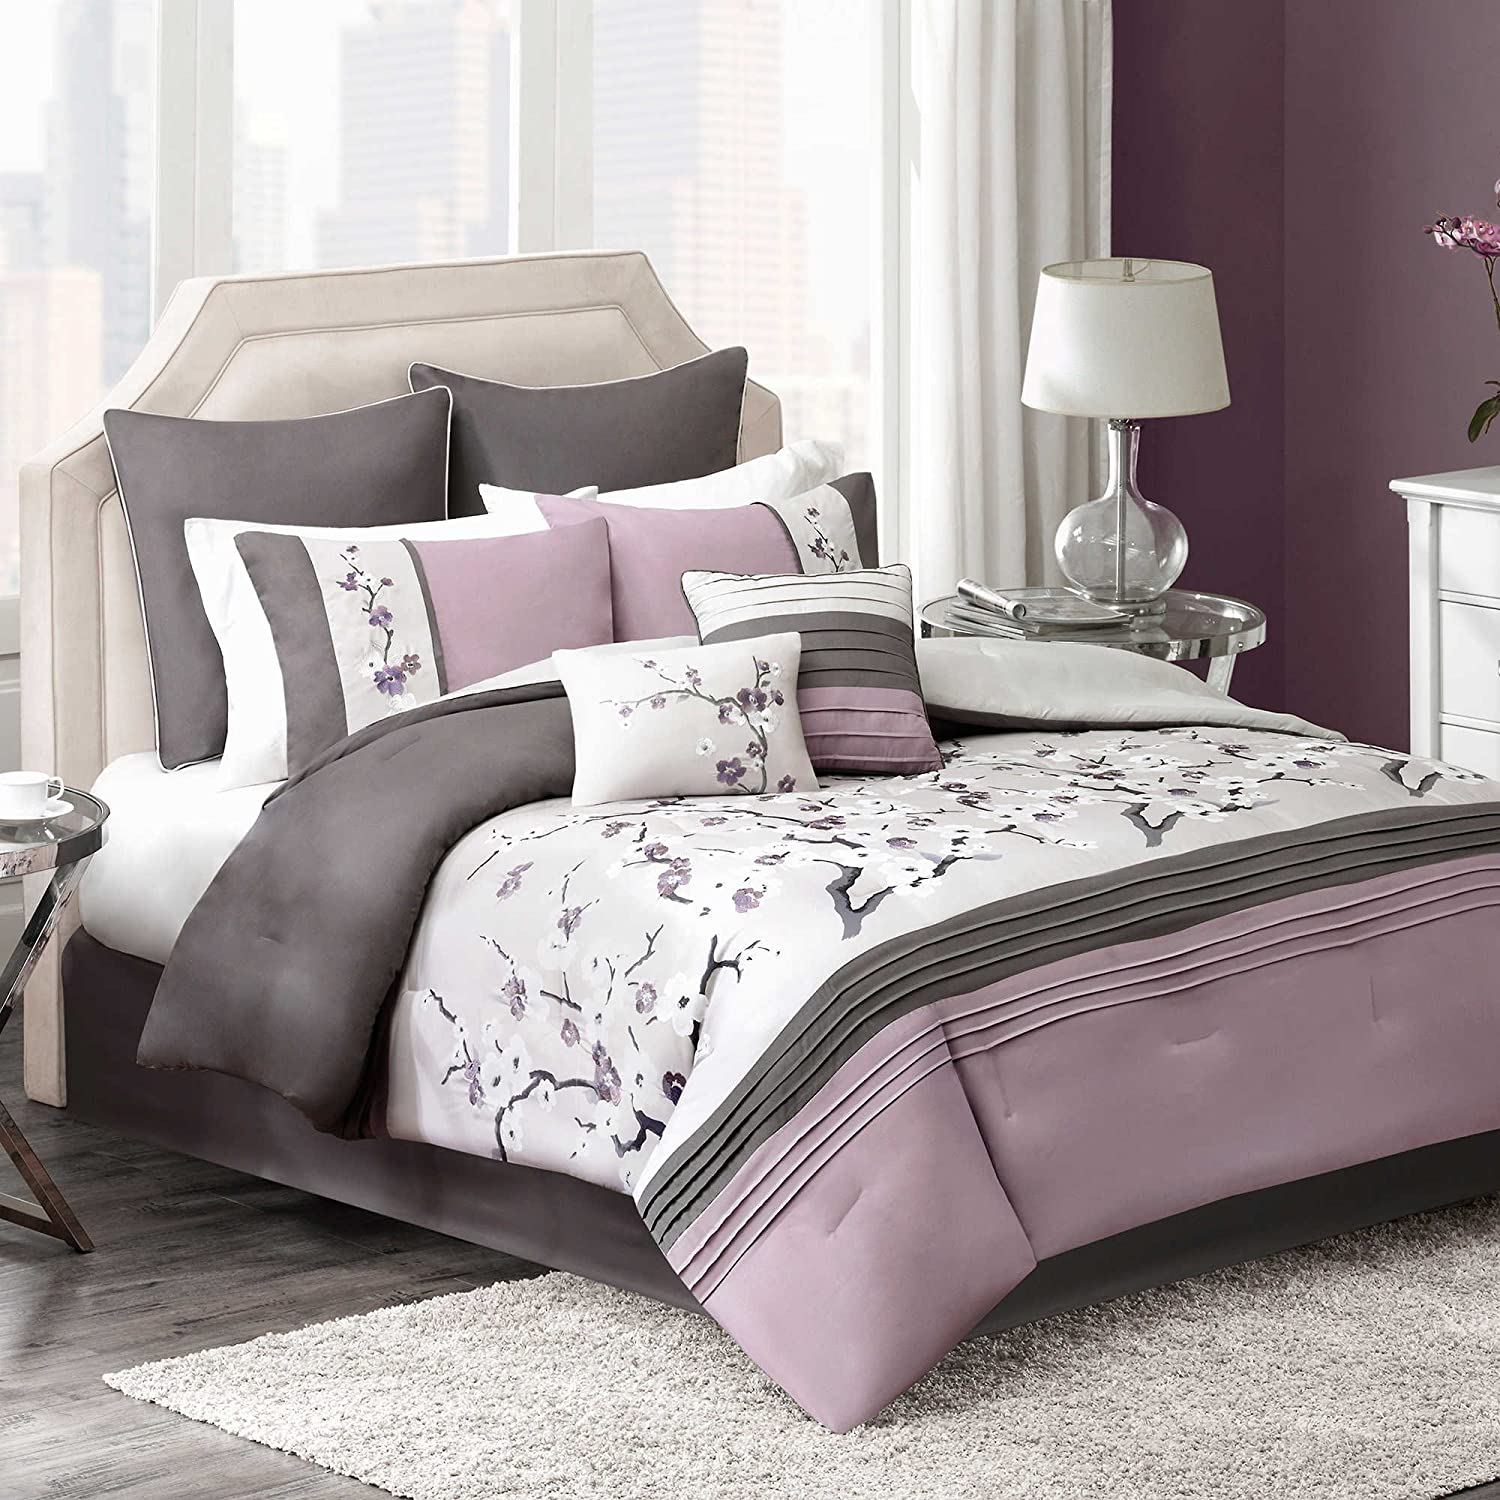 Modern Elegant Plum Bedding Floral Embroidered Comforter Set For Teen Girls